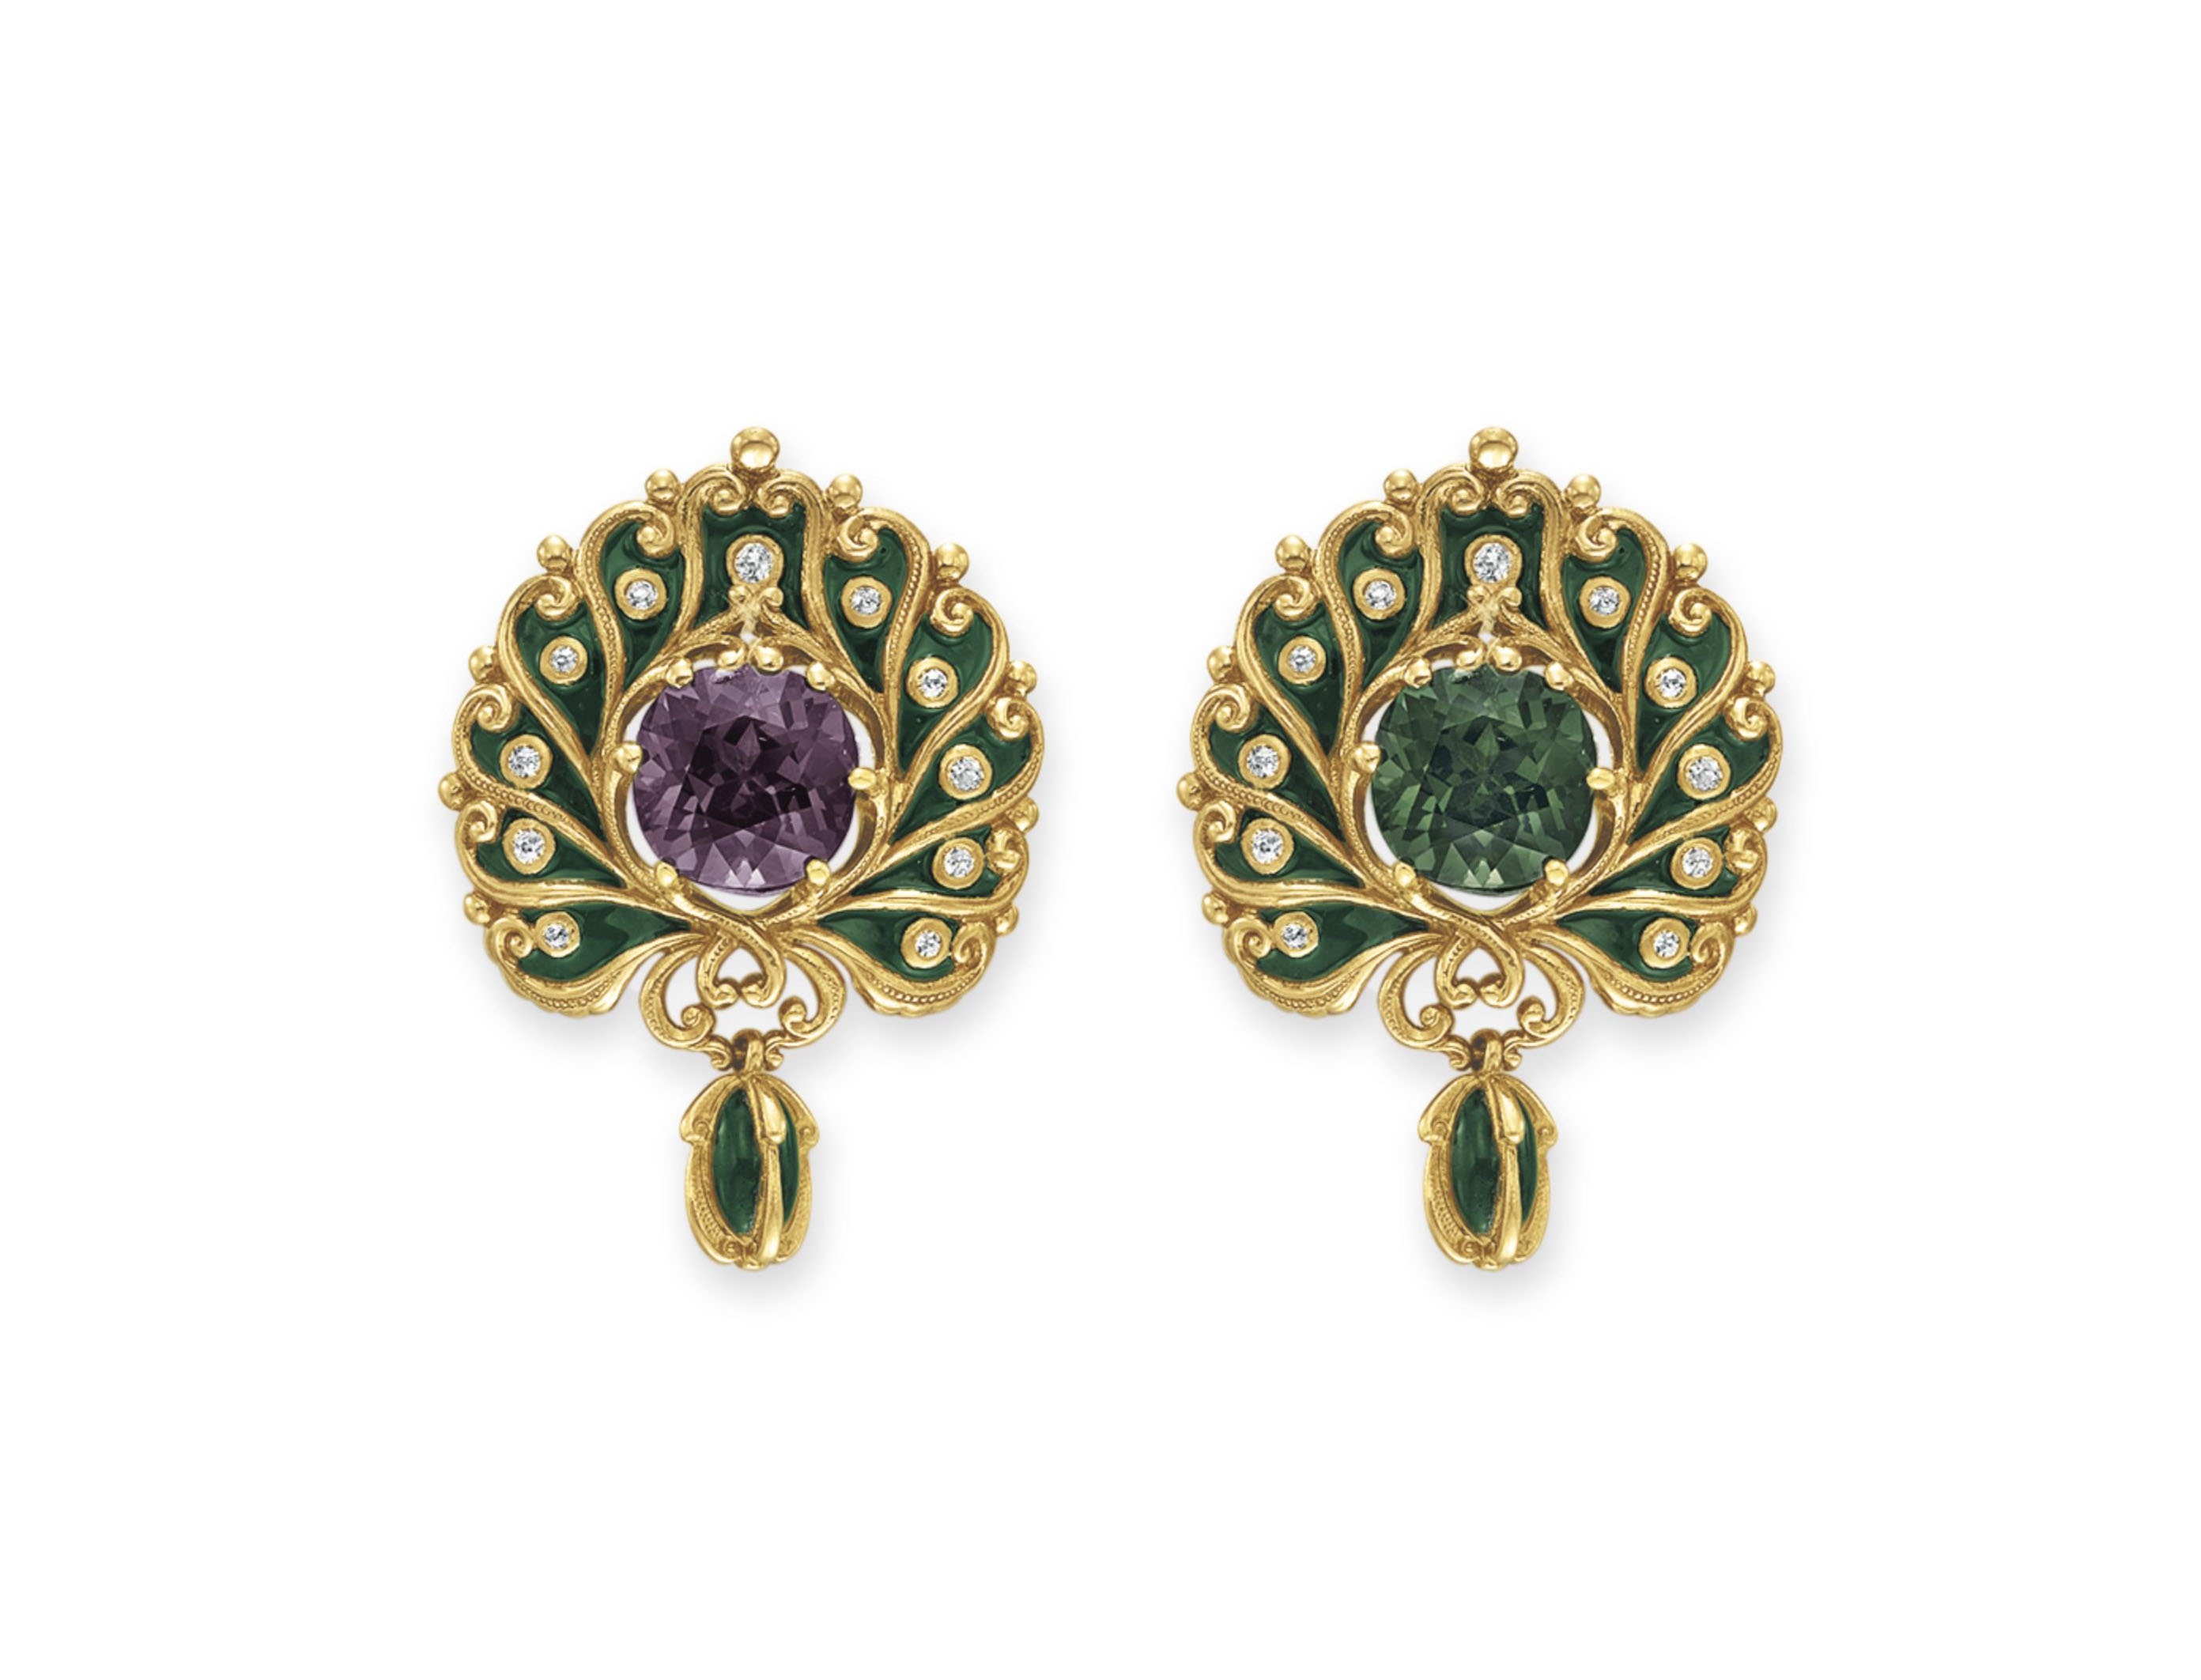 AN ART NOUVEAU ALEXANDRITE, DIAMOND AND ENAMEL BROOCH, BY MARCUS & CO.